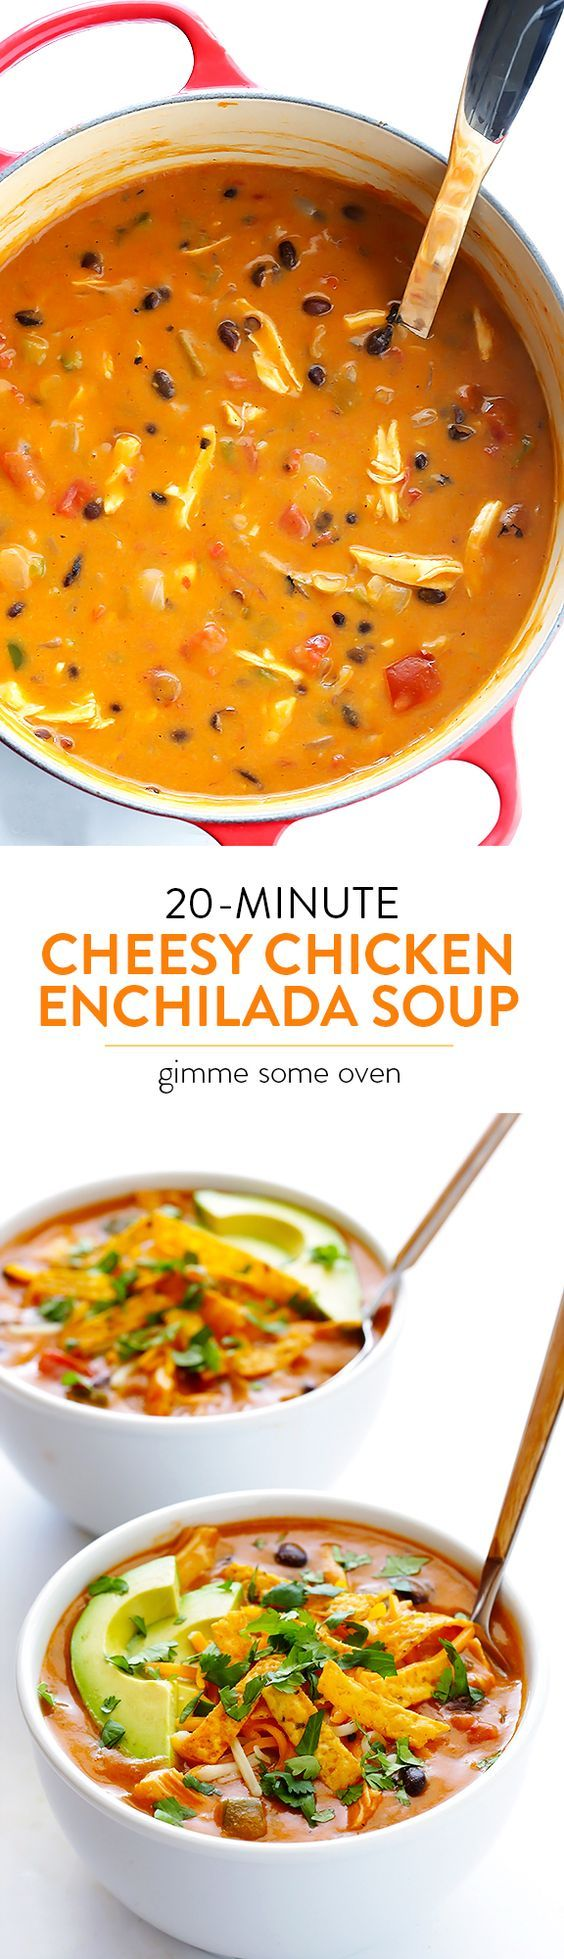 This delicious and flavorful soup is super-easy to make, and it's ready to go in about 20 minutes!  Even better!!   gimmesomeoven: